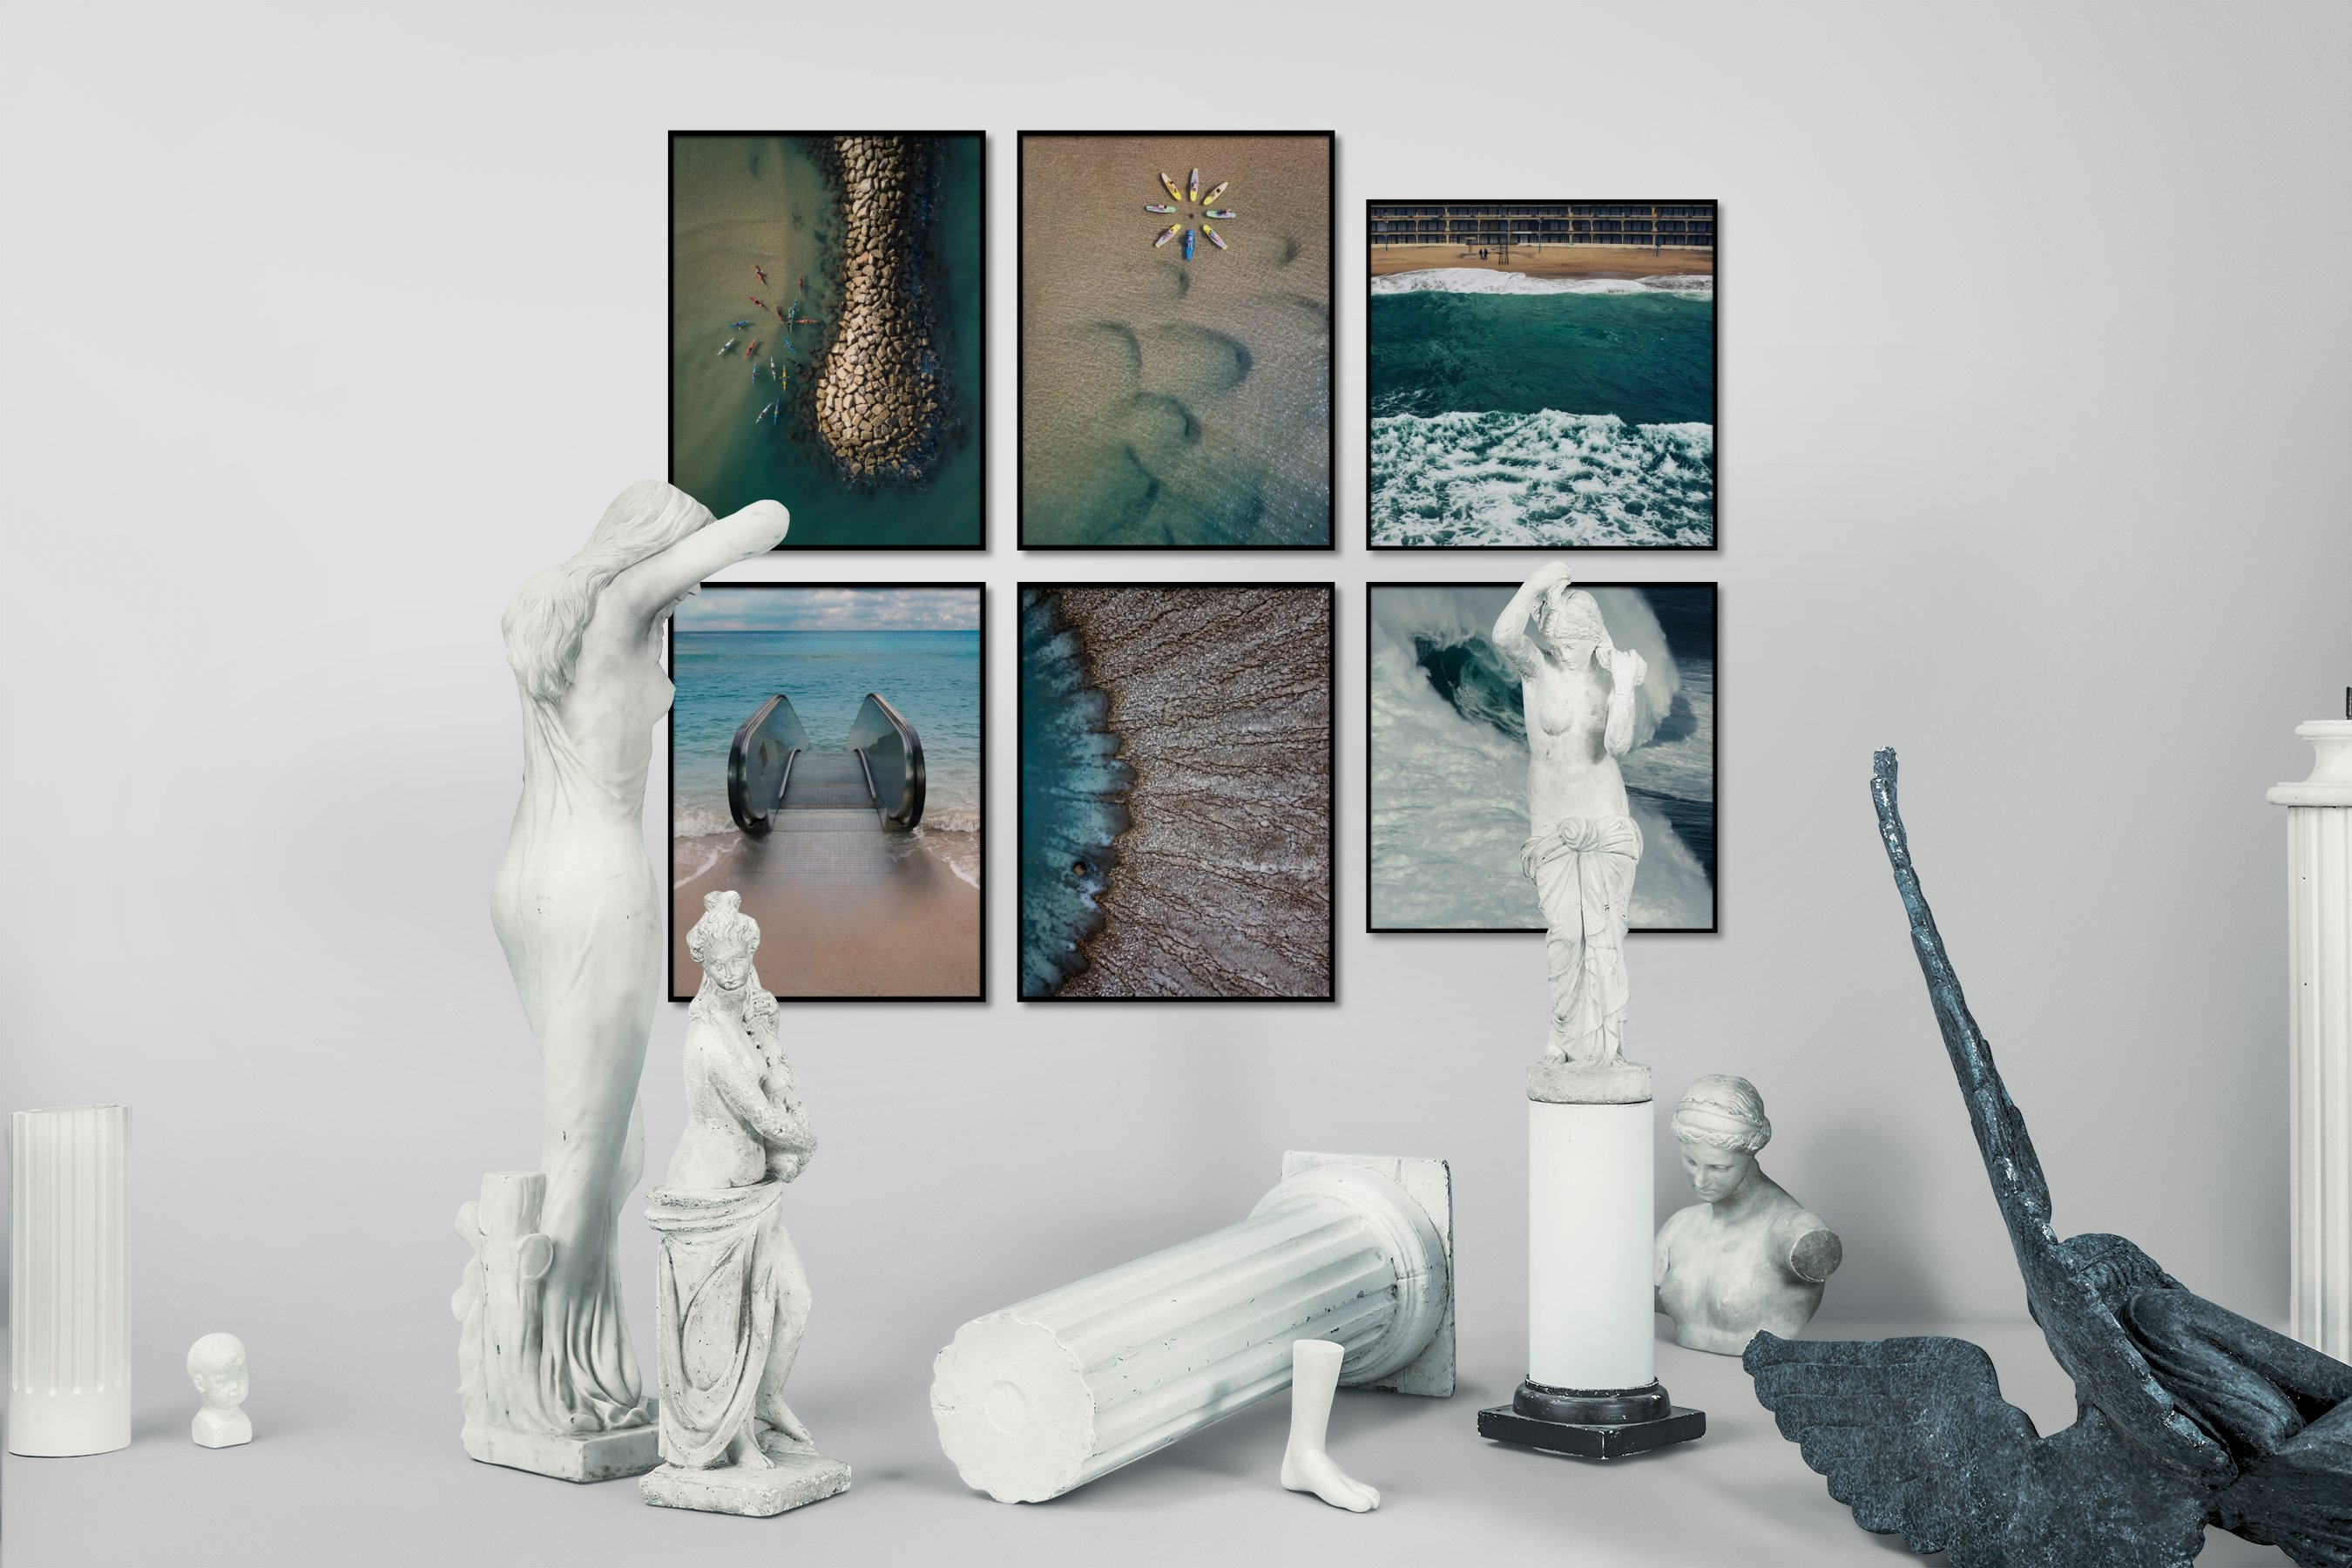 Gallery wall idea with six framed pictures arranged on a wall depicting For the Moderate, Beach & Water, For the Minimalist, Mindfulness, and Artsy